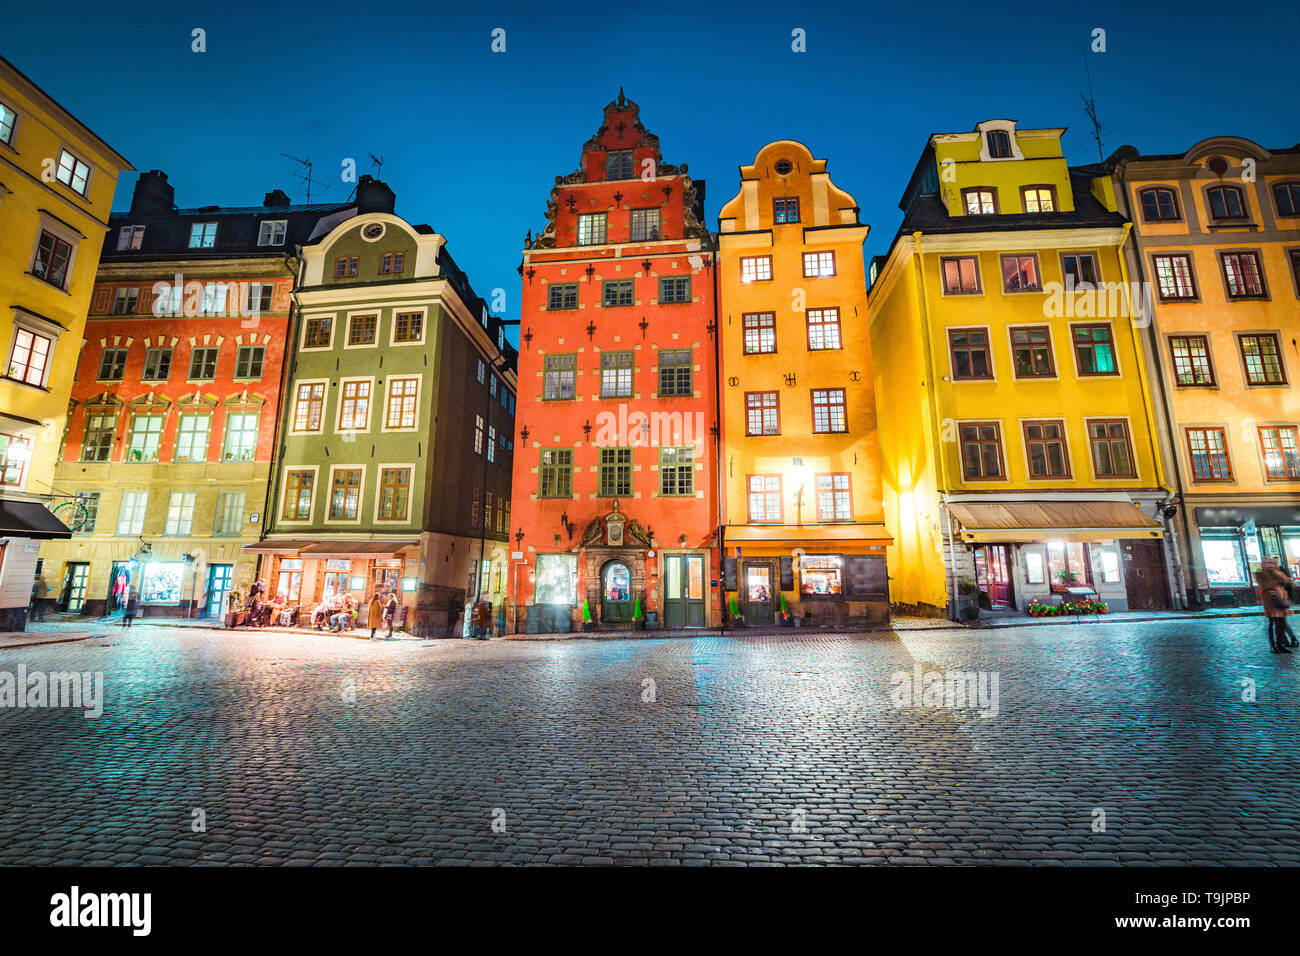 Classic view of colorful houses at famous Stortorget town square in Stockholm's historic Gamla Stan (Old Town) at night, central Stockholm, Sweden - Stock Image